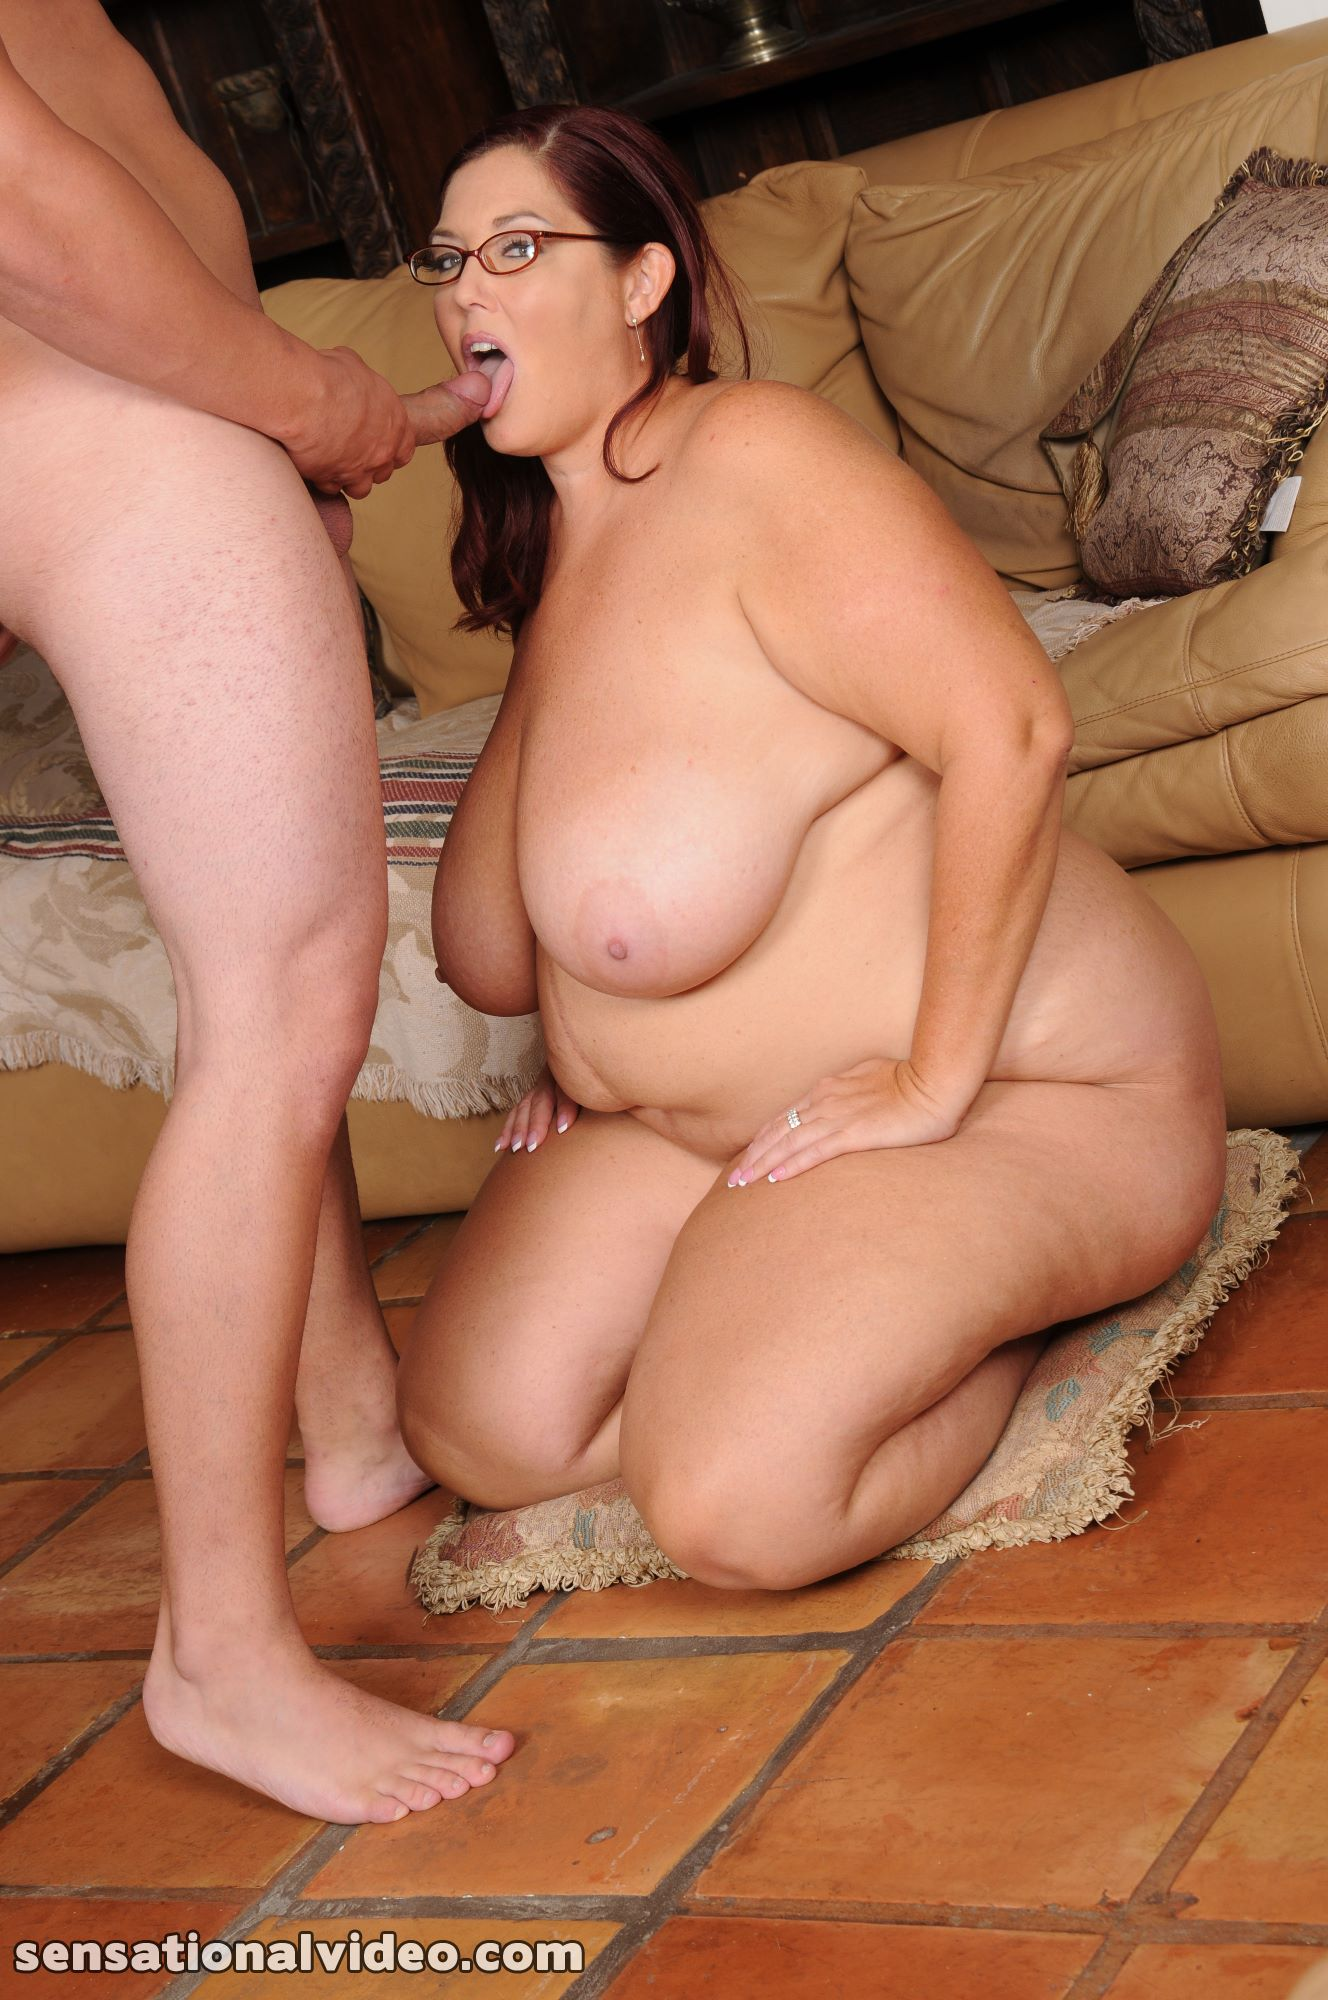 lesgalls spicytitties plumperpass gal553 pic 14